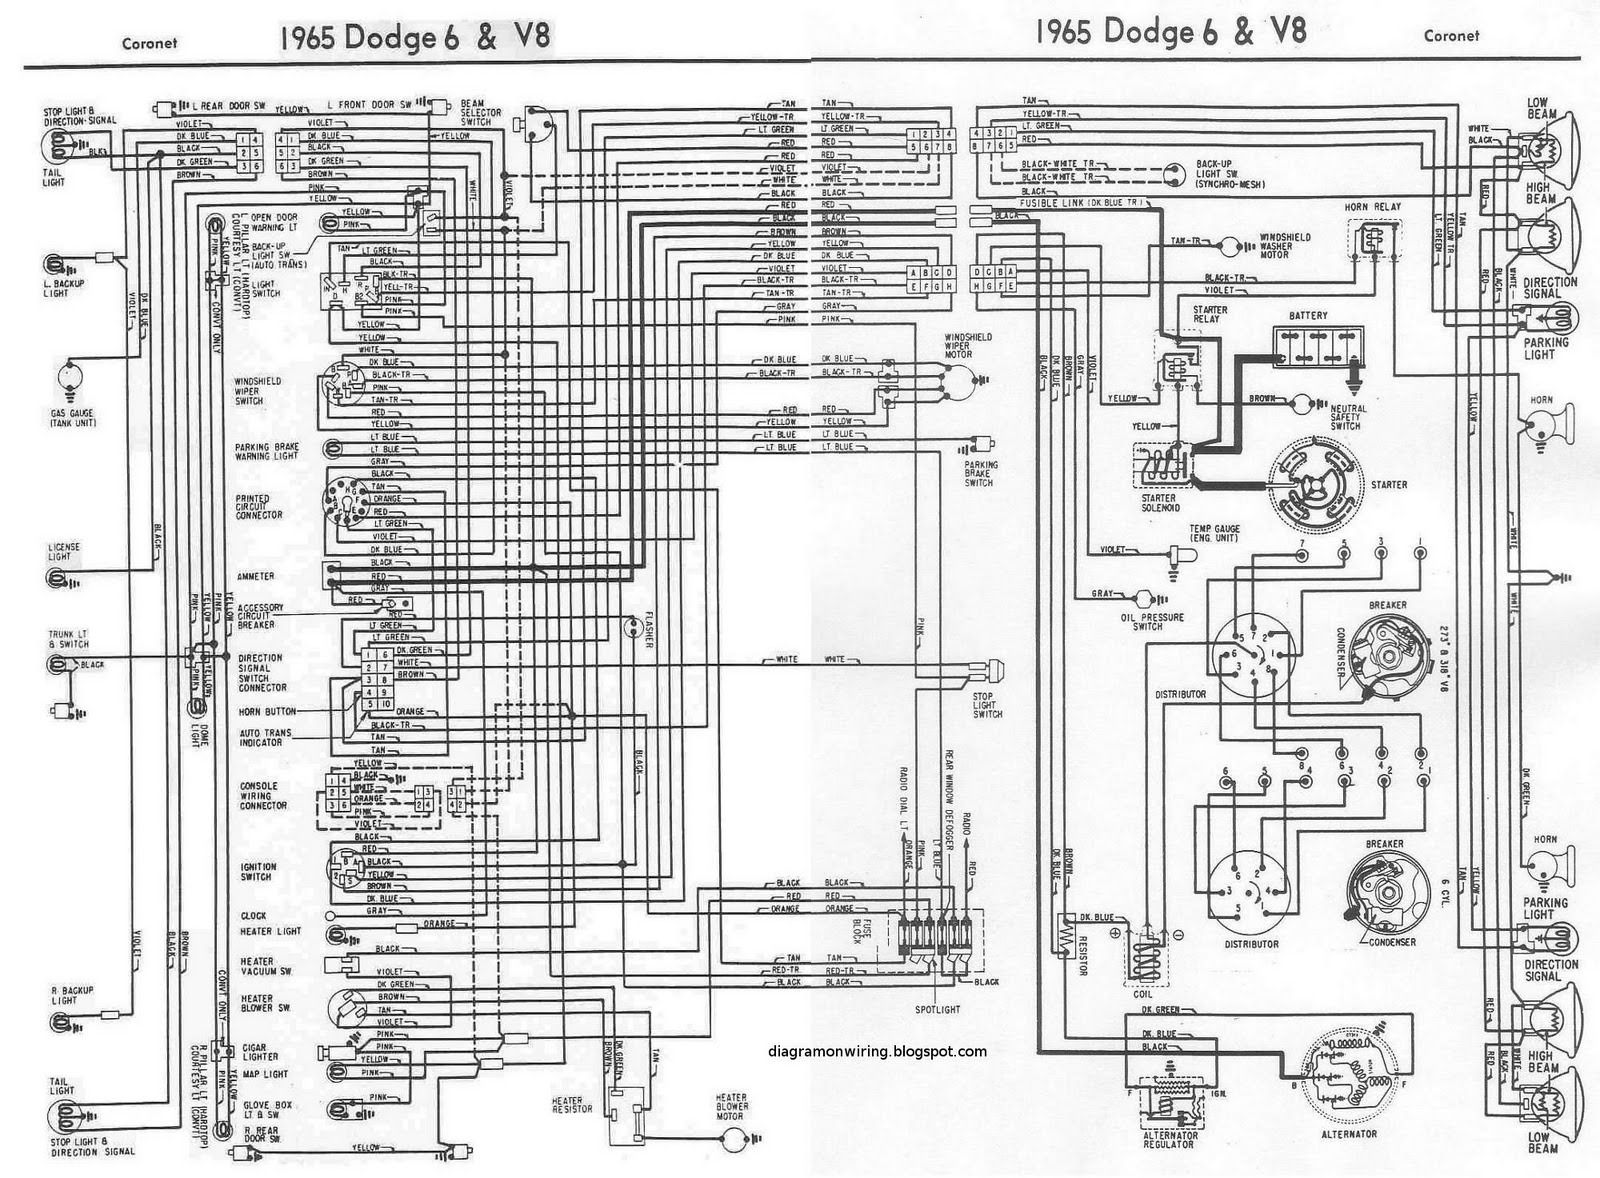 1970 barracuda wiring diagram 1971 cuda wiring diagram - wiring diagram